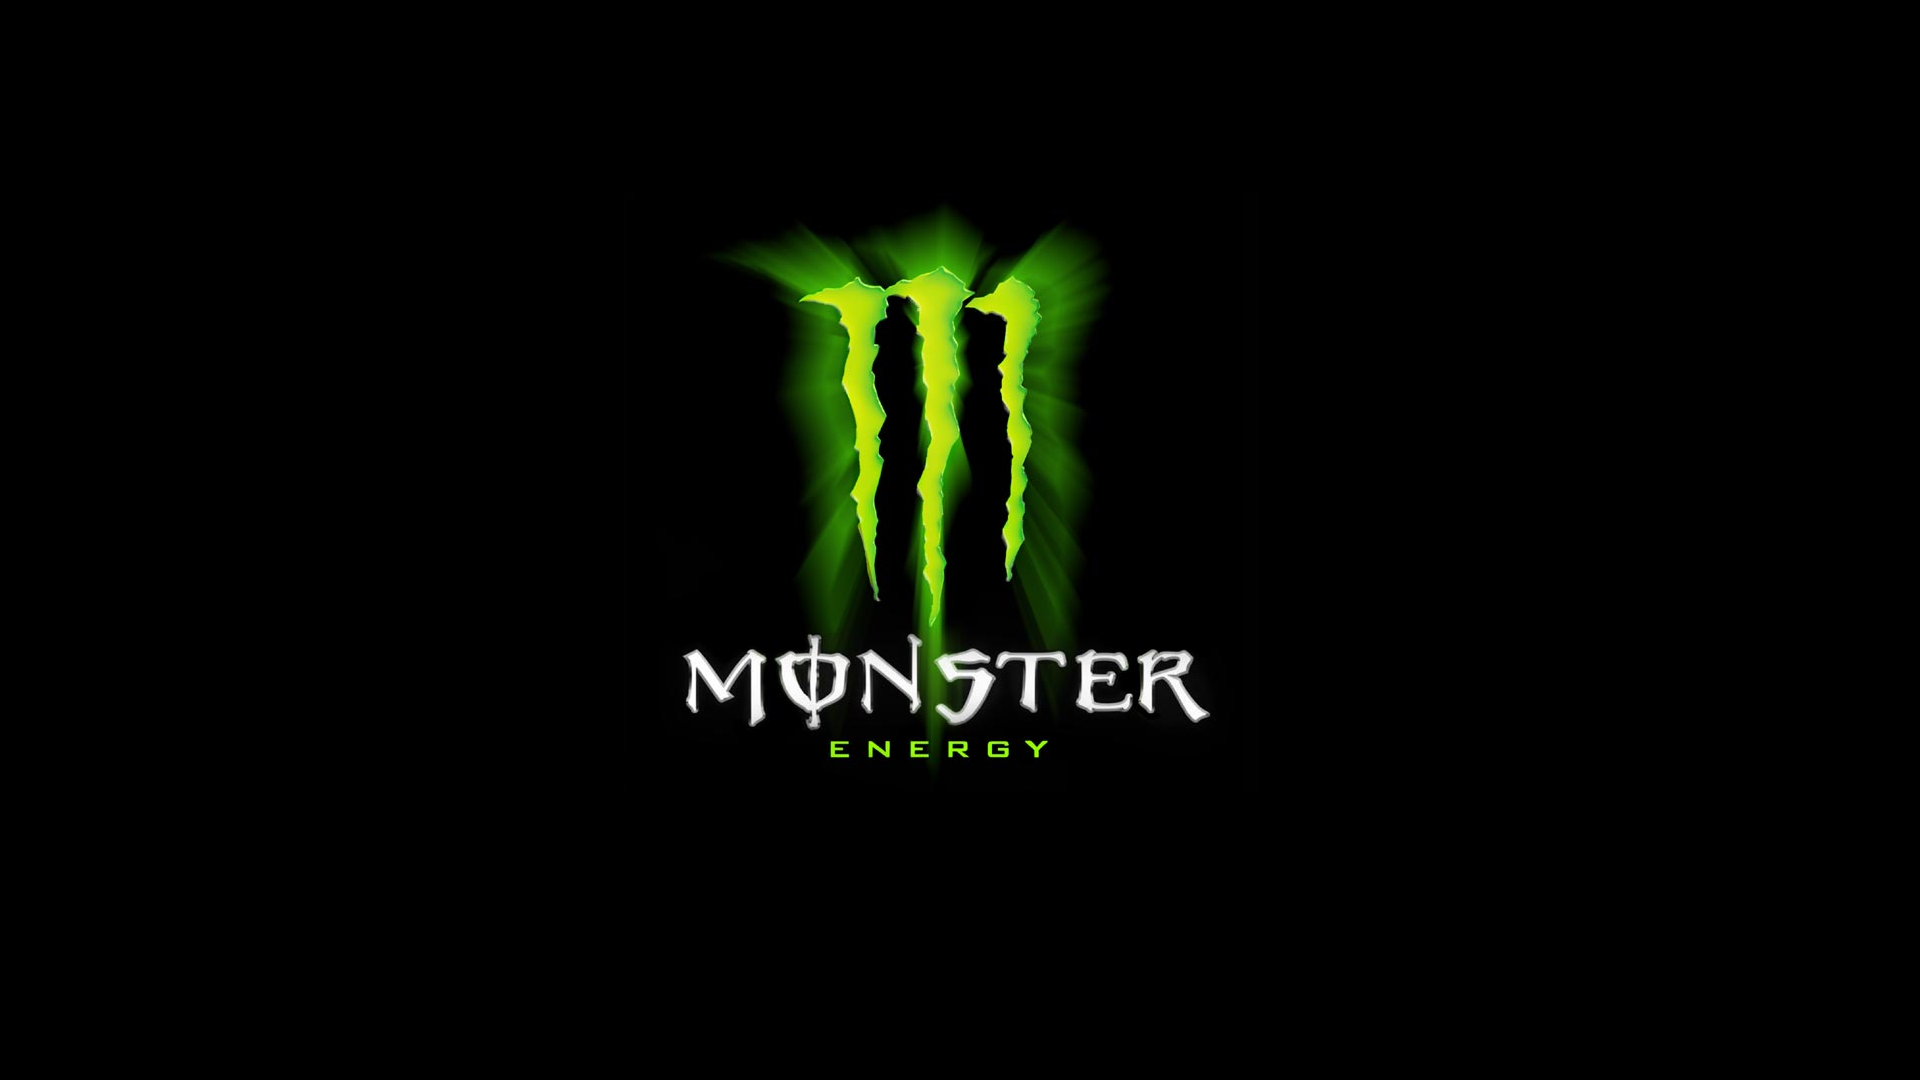 Pictures for Desktop: Monster, 27/10/2013